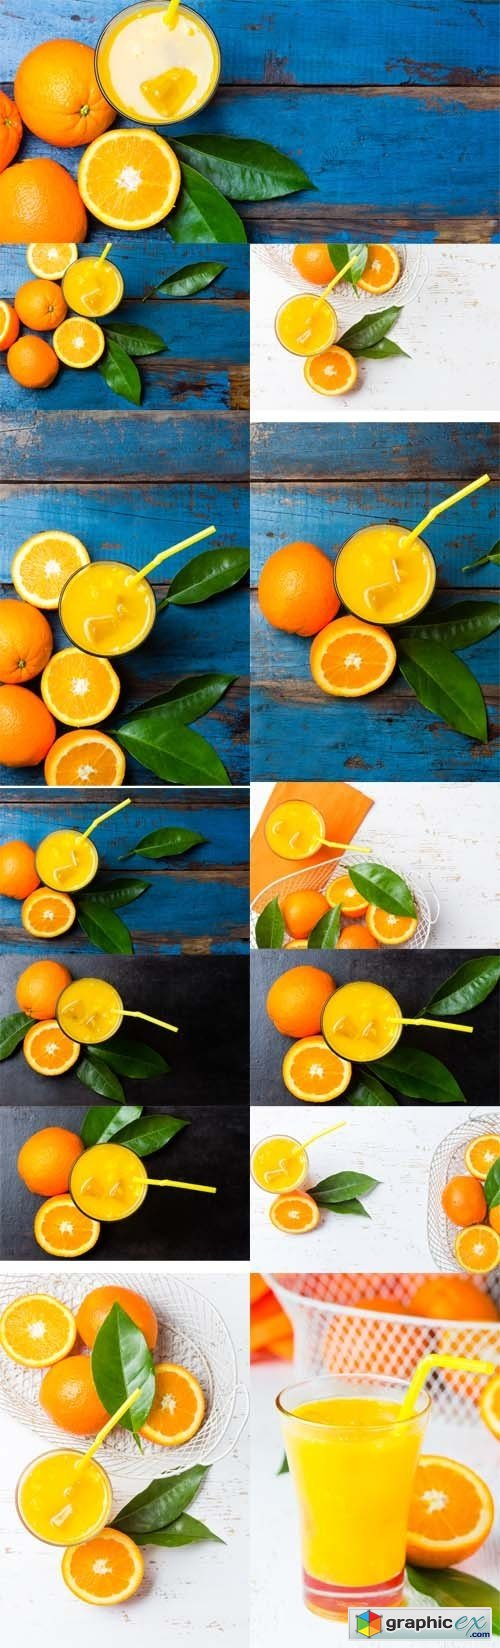 Photo Set - Glass of Freshly Squeezed Orange Juice and Fresh Oranges